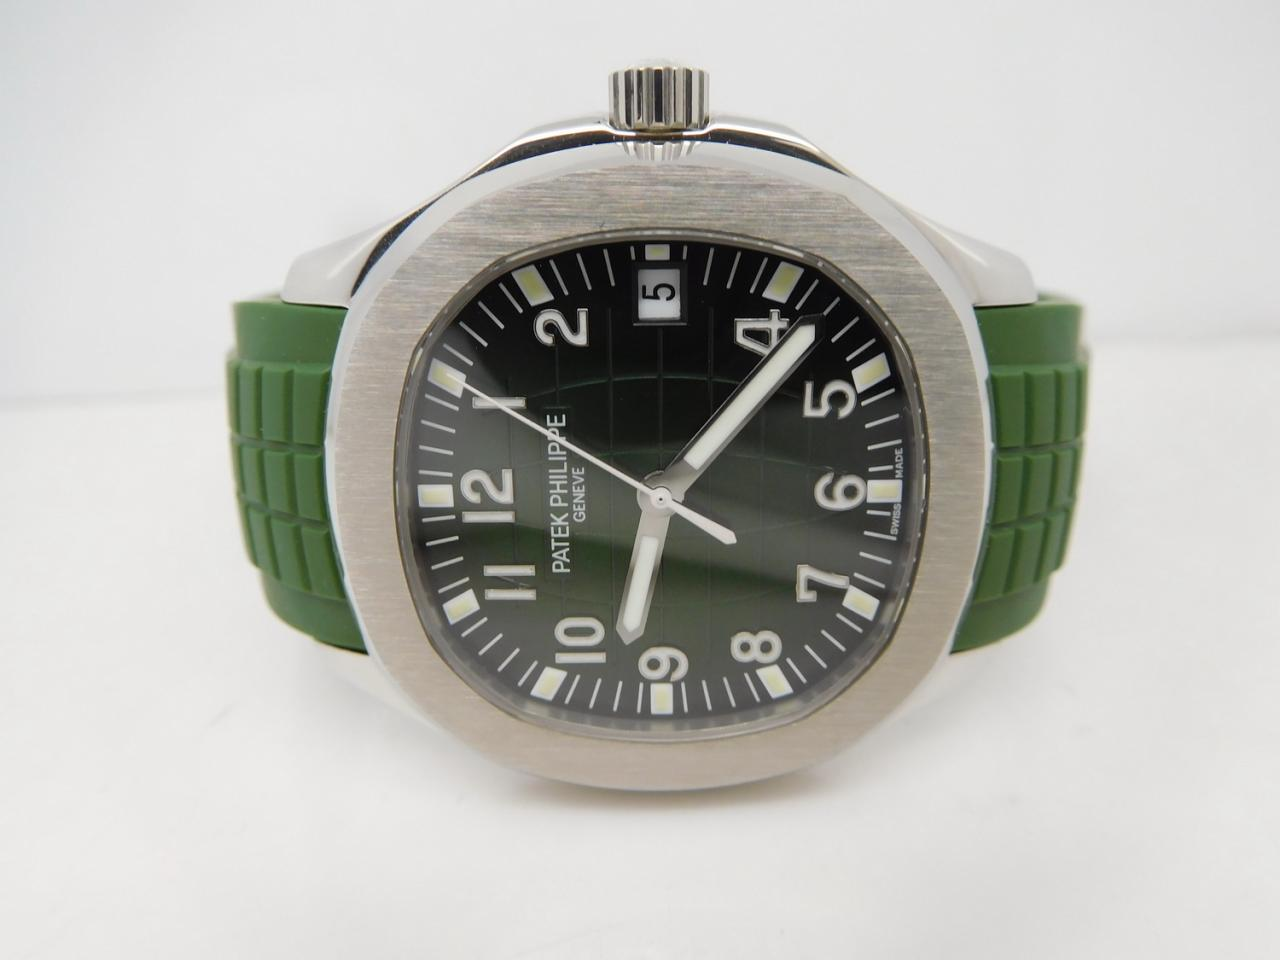 Replica Patek Philippe Aquanaut 5167 Green